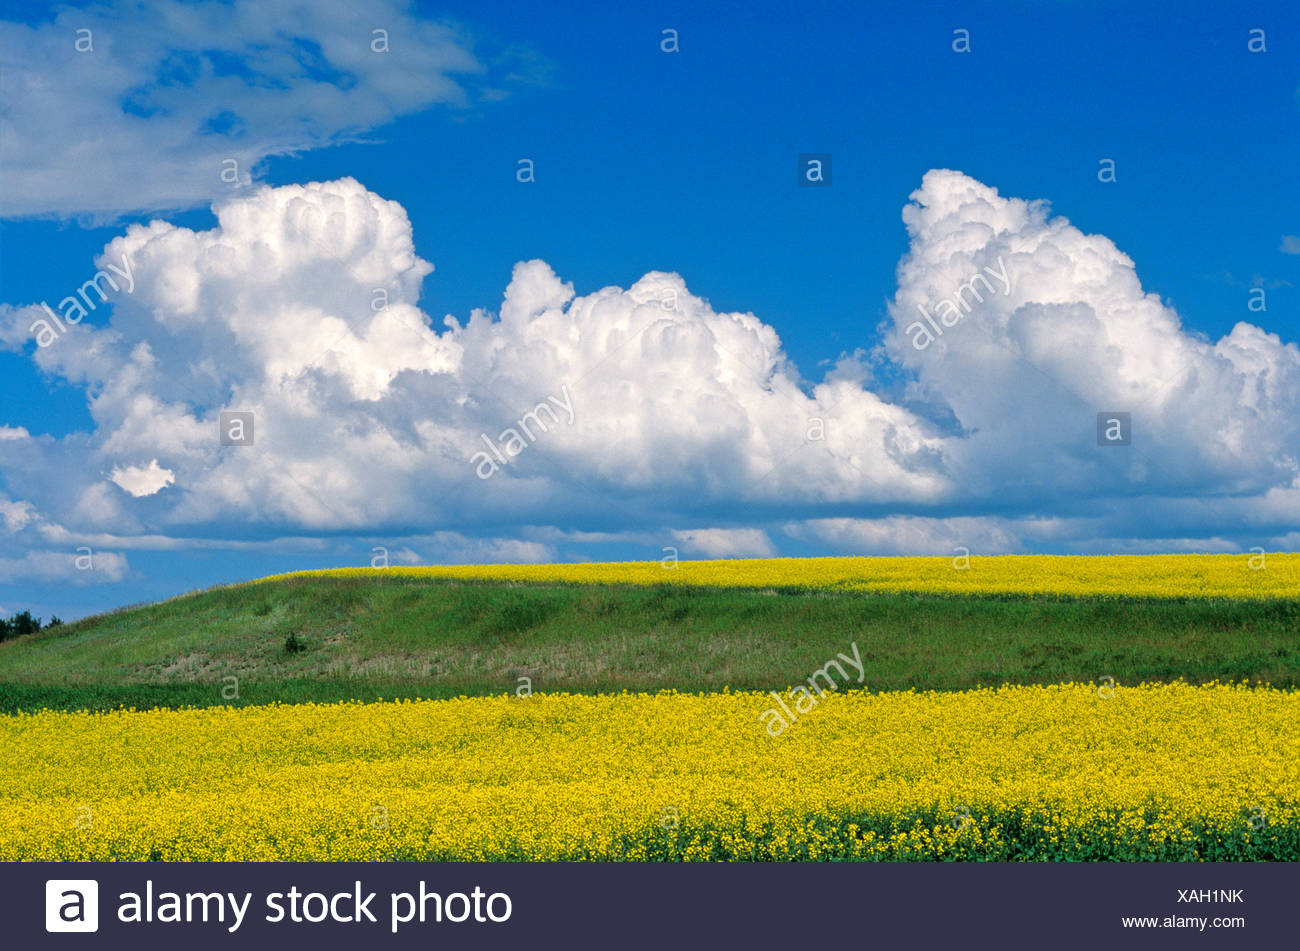 Developing cumulonimbus cloud buildup over canola fields near St. Leon, Manitoba, Canada. - Stock Image